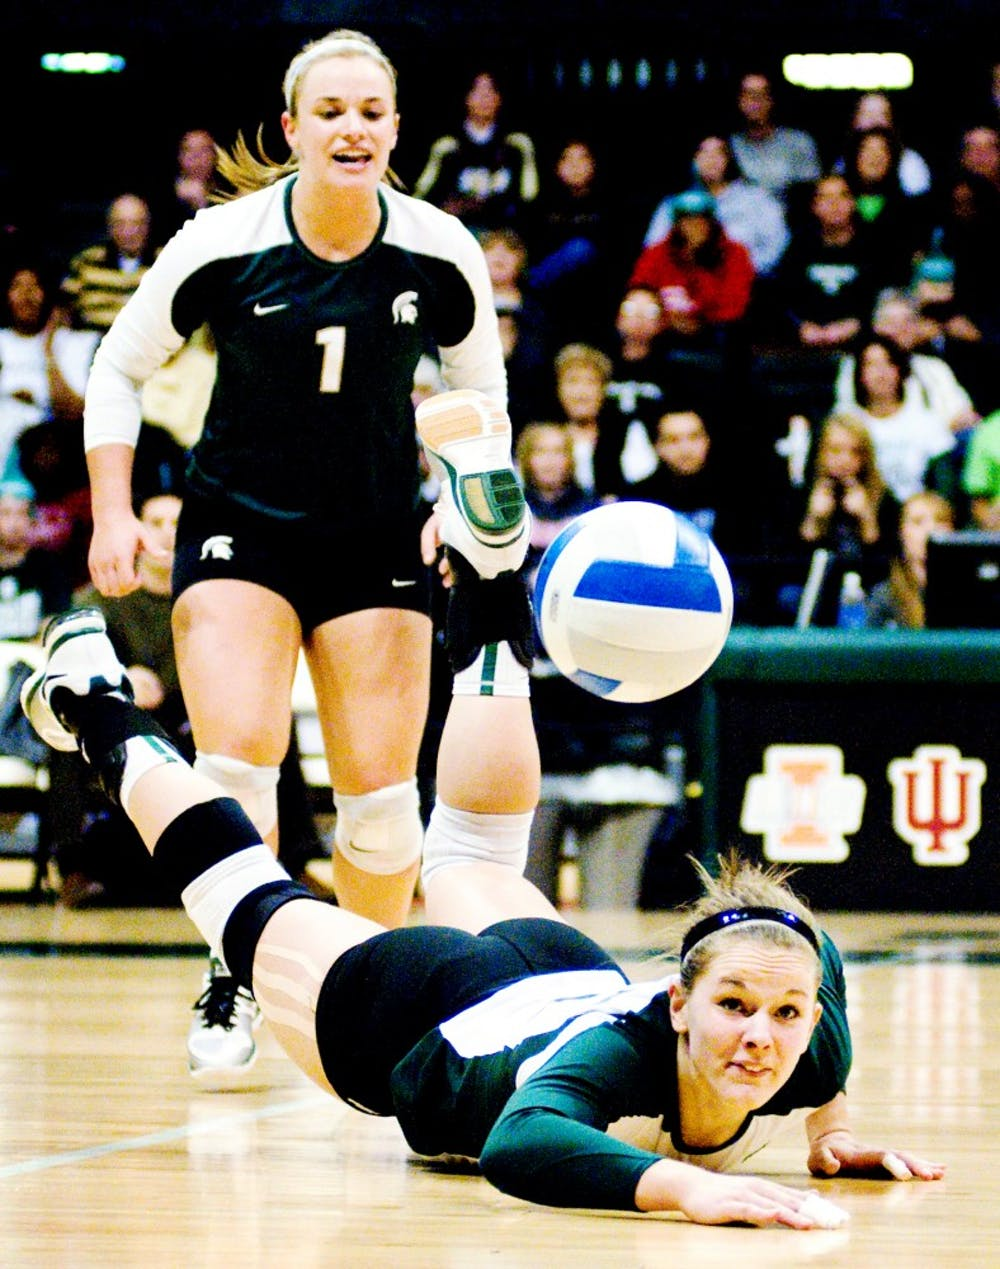 Redshirt senior outsider hitter and middle blocker Jenilee Rathje  falls to the floor after attempting to dig the volleyball. The Spartans fell against the Boilermakers, 3-1, Saturday night at Jenison Field House. Justin Wan/The State News